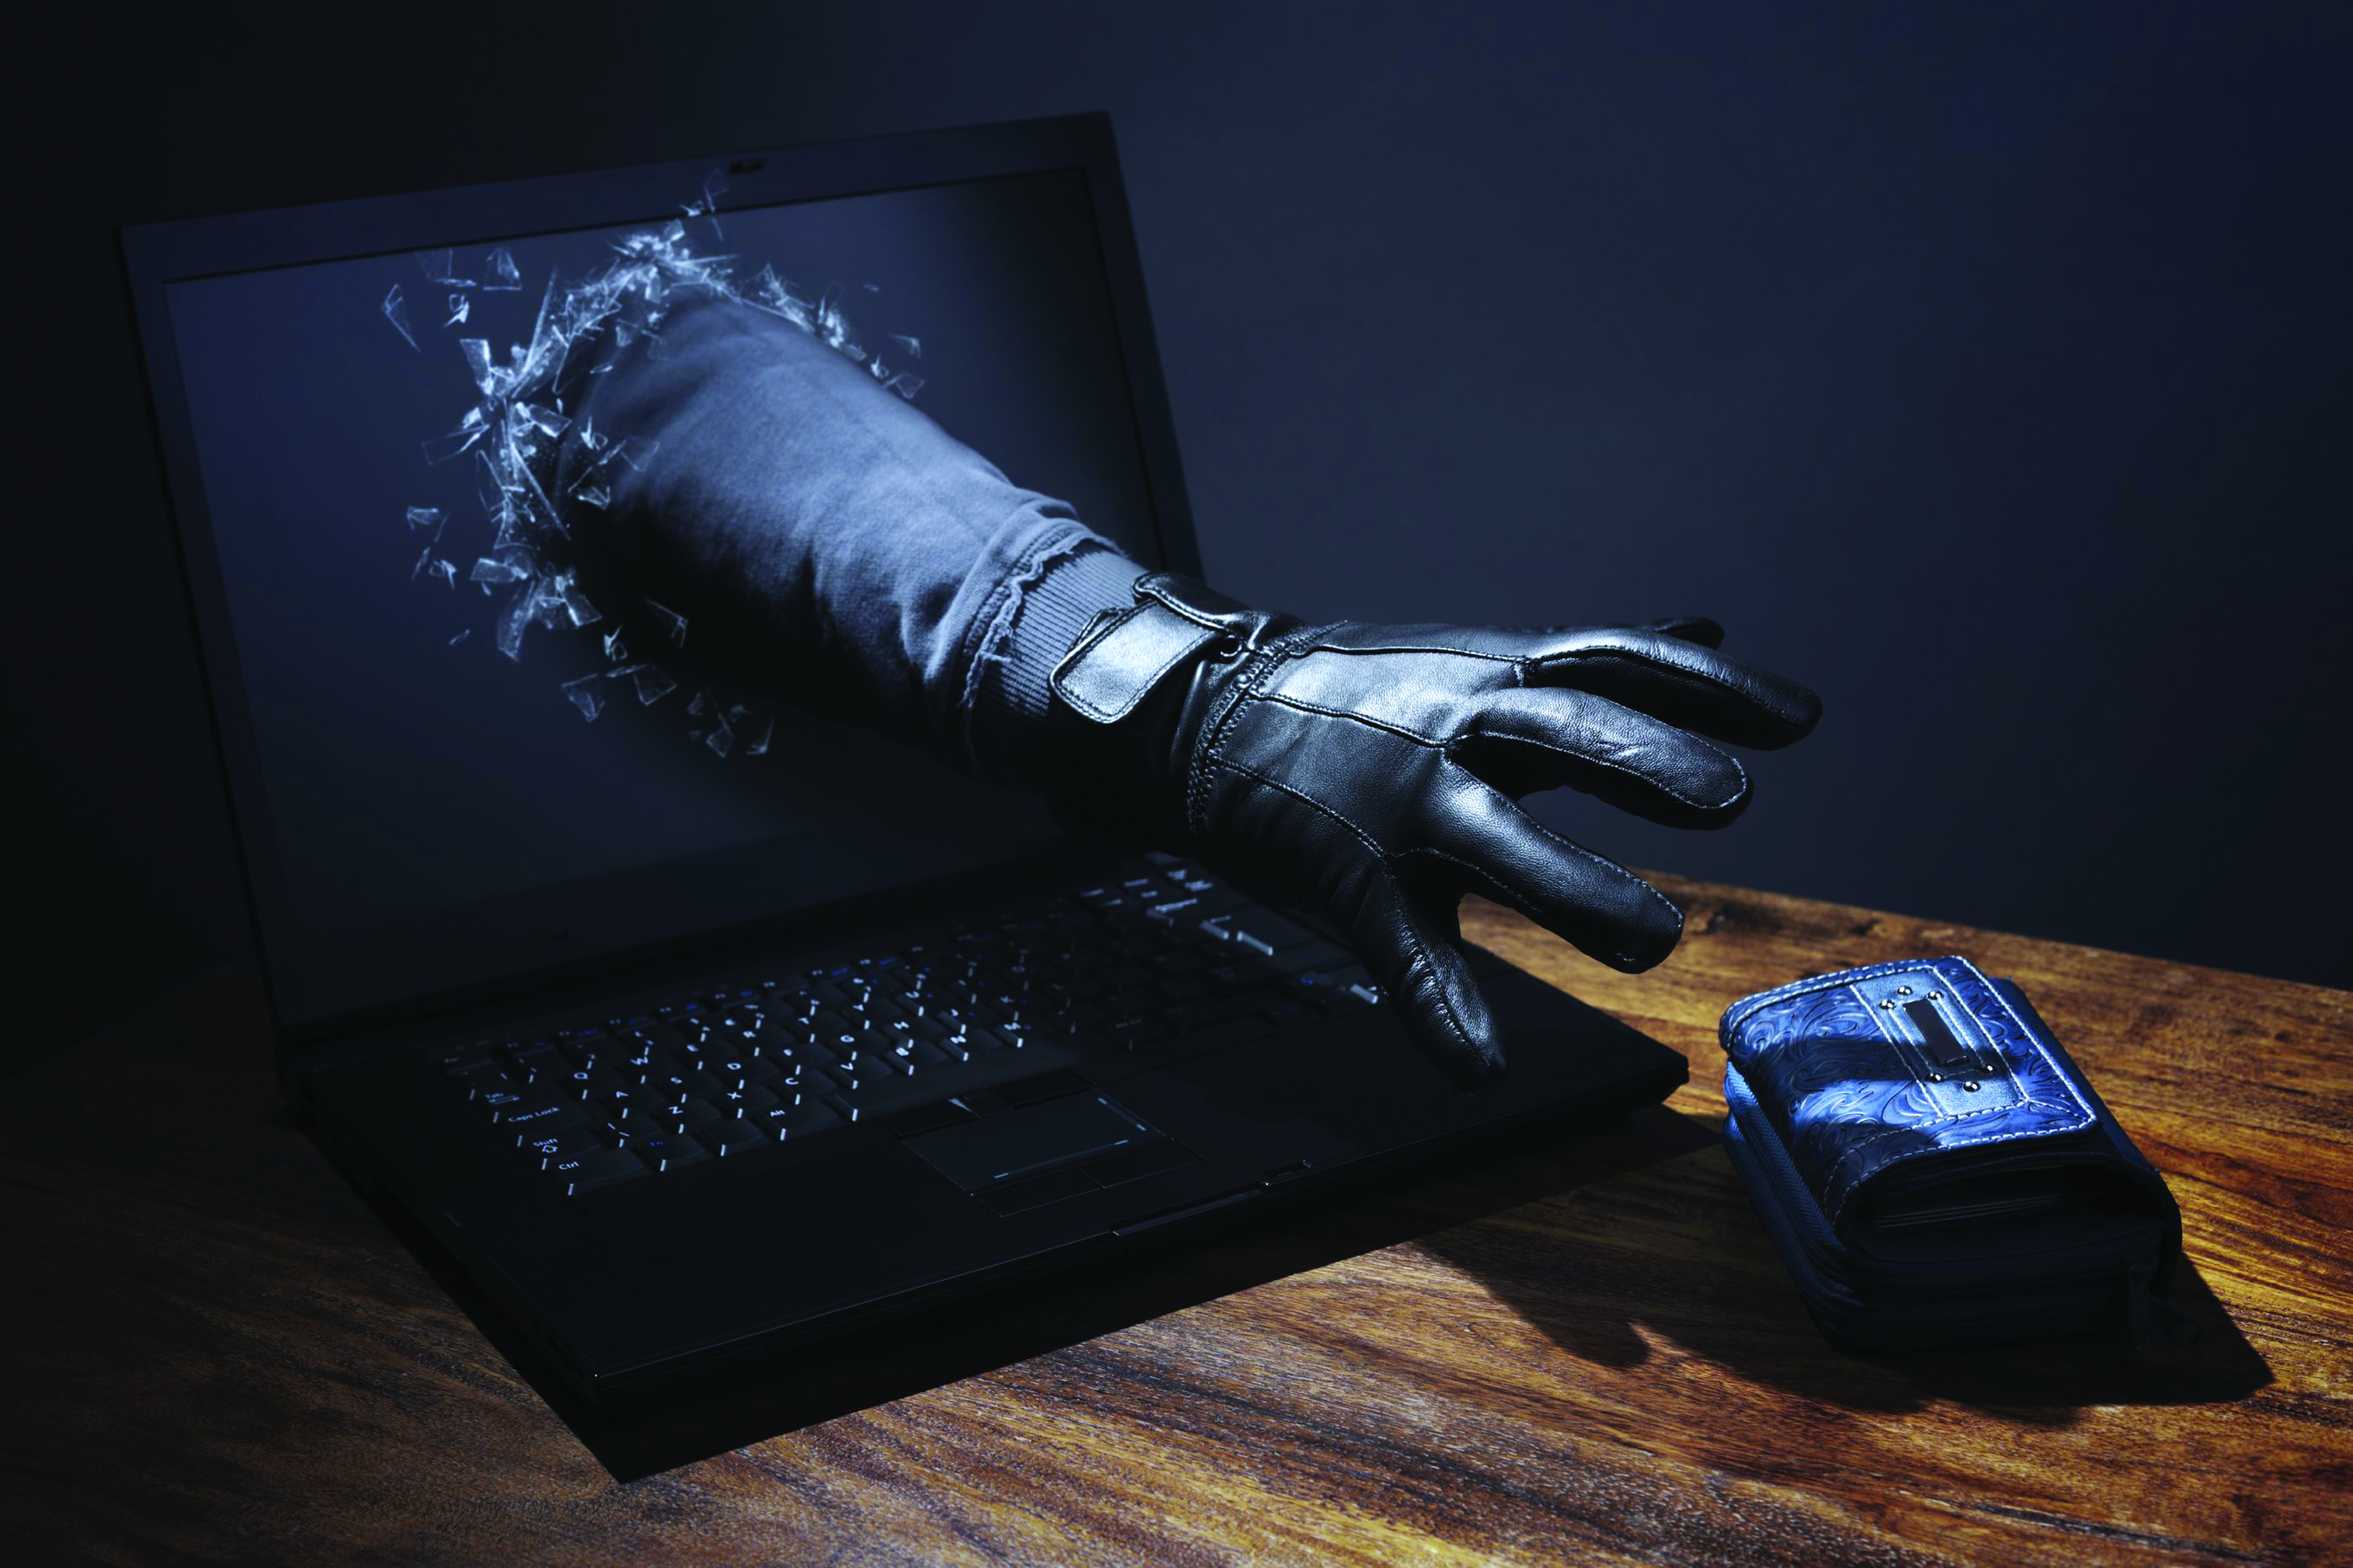 Dedicated laws needed to address growing spectre of cybercrime